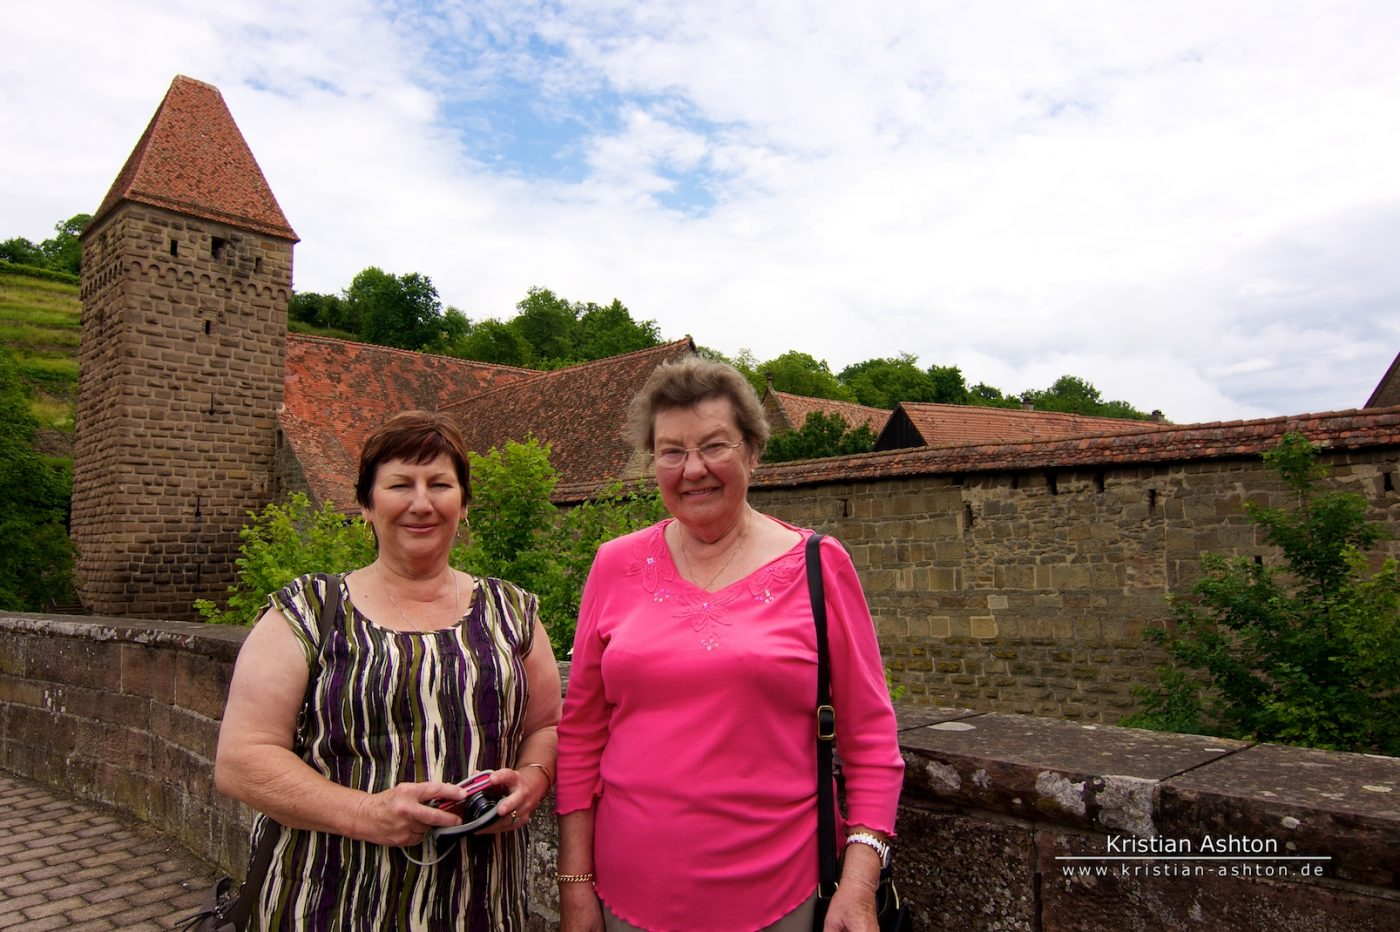 Mum and Omi at Maulbronn monestary